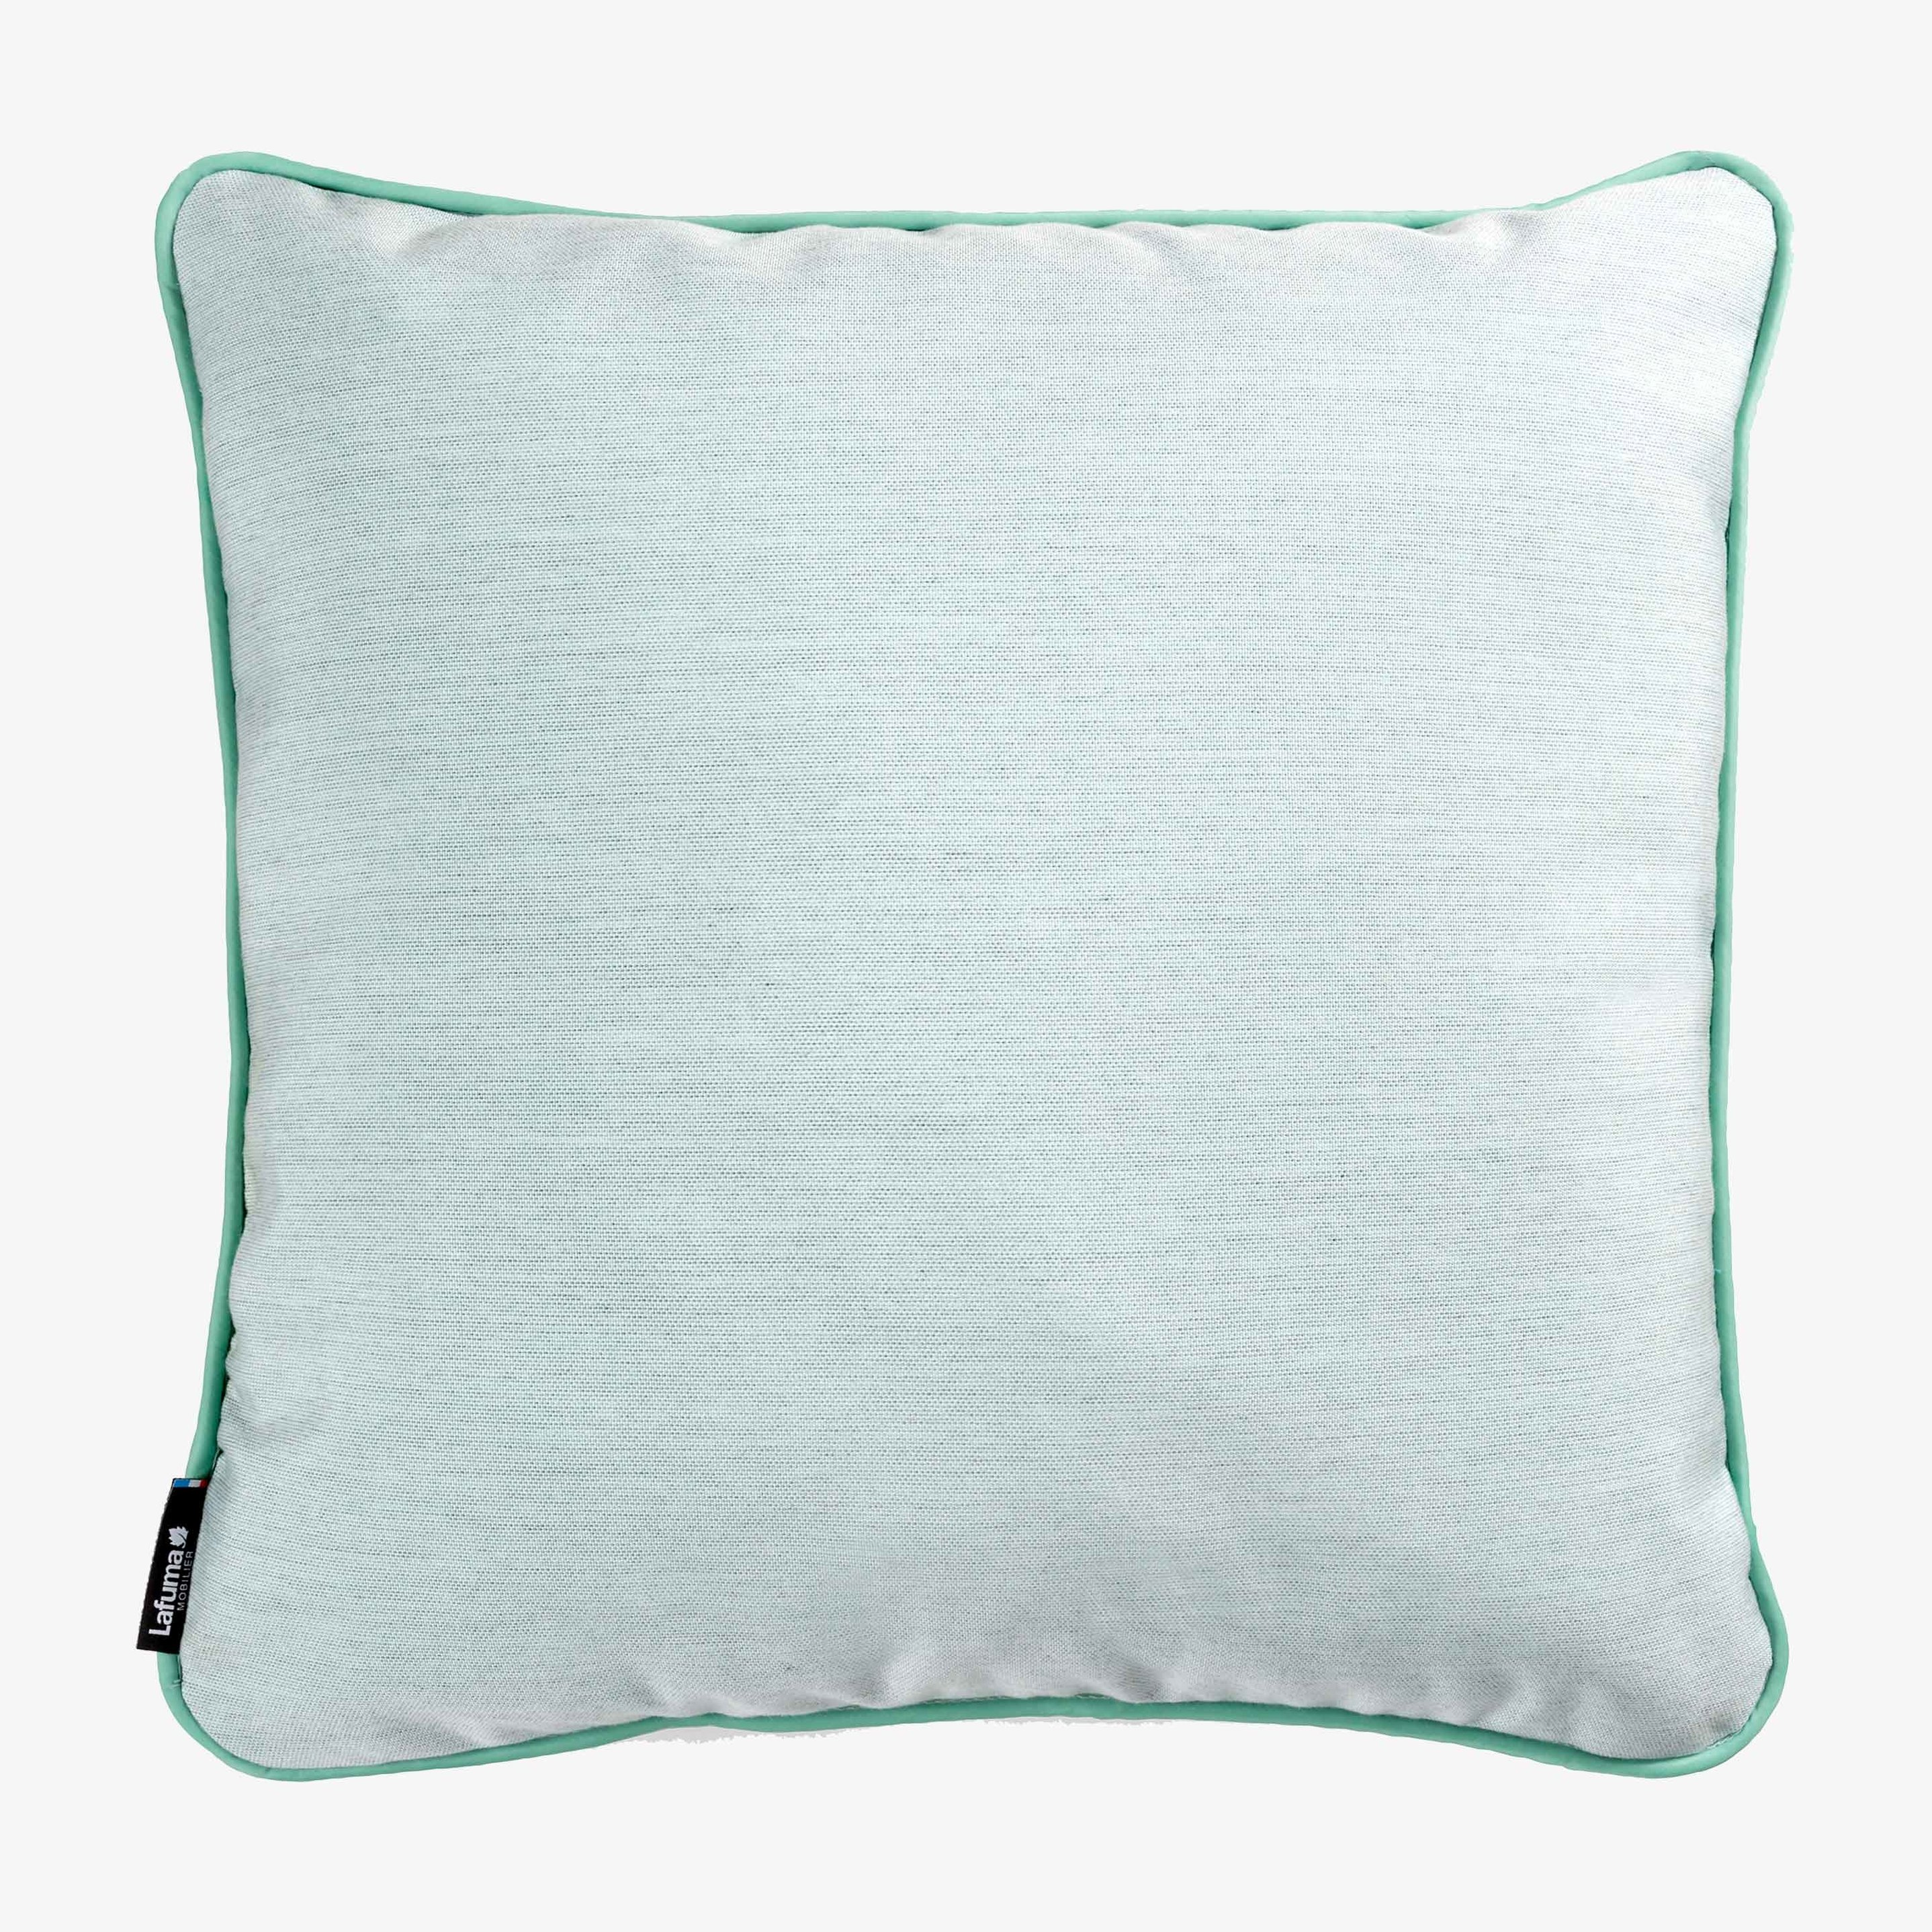 EROME COUSSIN CARRE